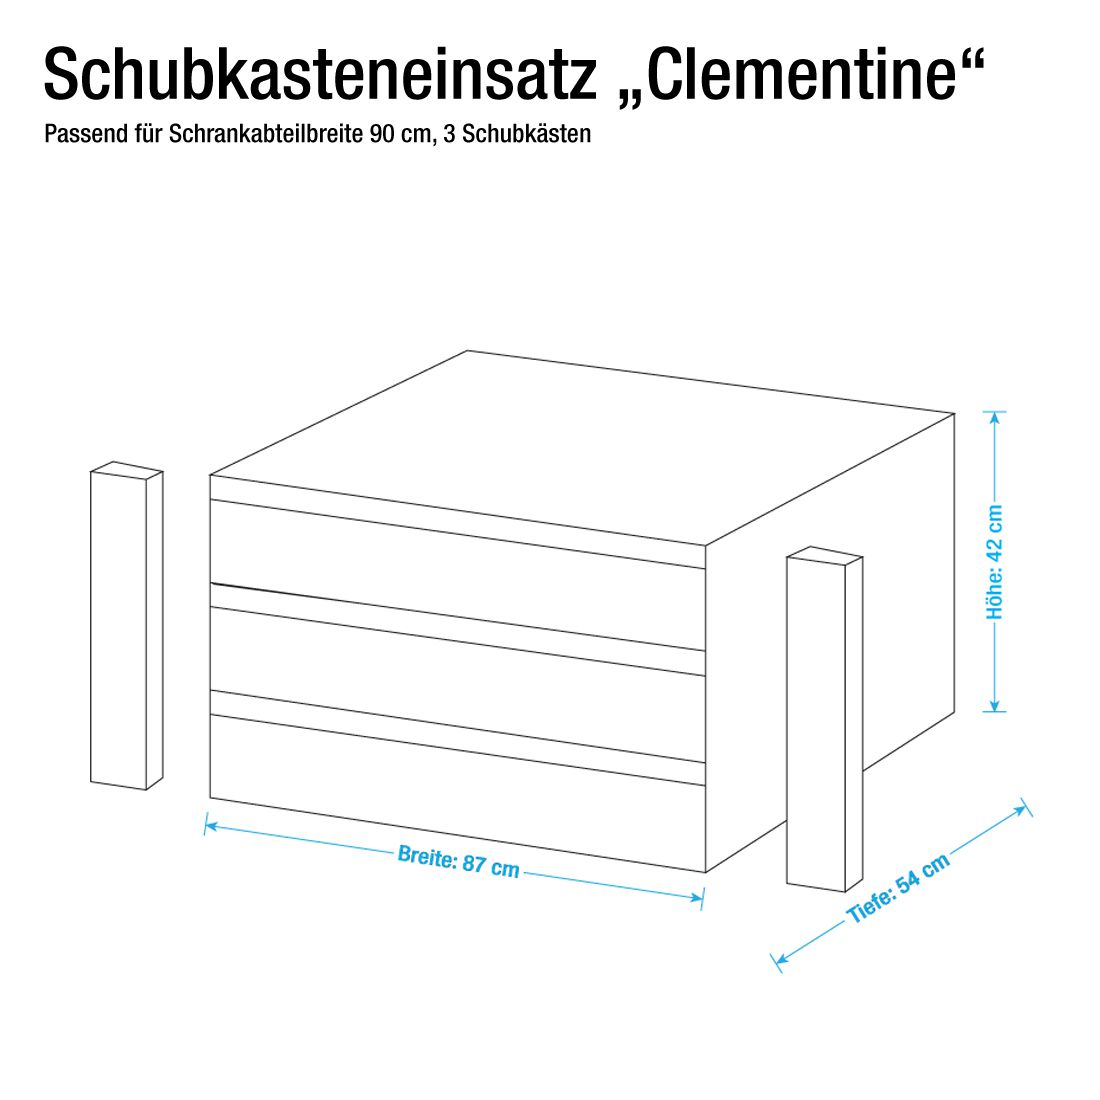 90er schubkasteneinsatz schubkasteneinsatz clementine f r fach 90cm breit. Black Bedroom Furniture Sets. Home Design Ideas